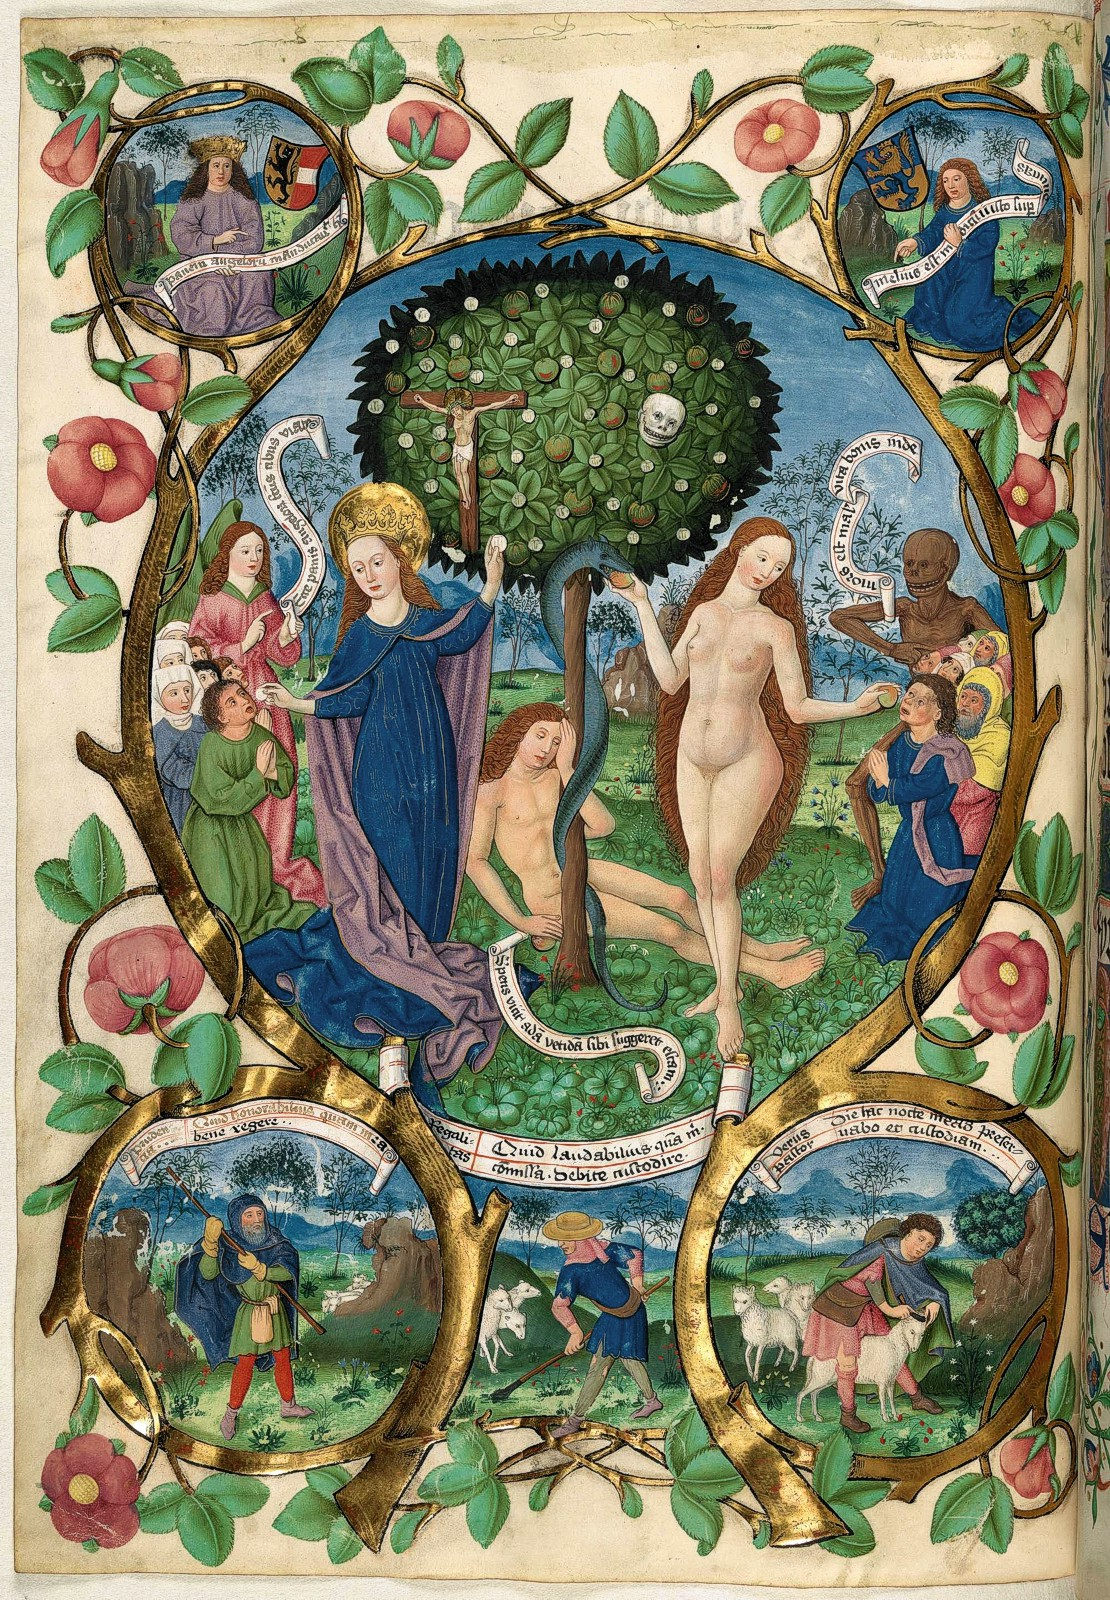 Image from the 15th century Salzburg Missal. Image from http://pre-gebelin.blogspot.com/